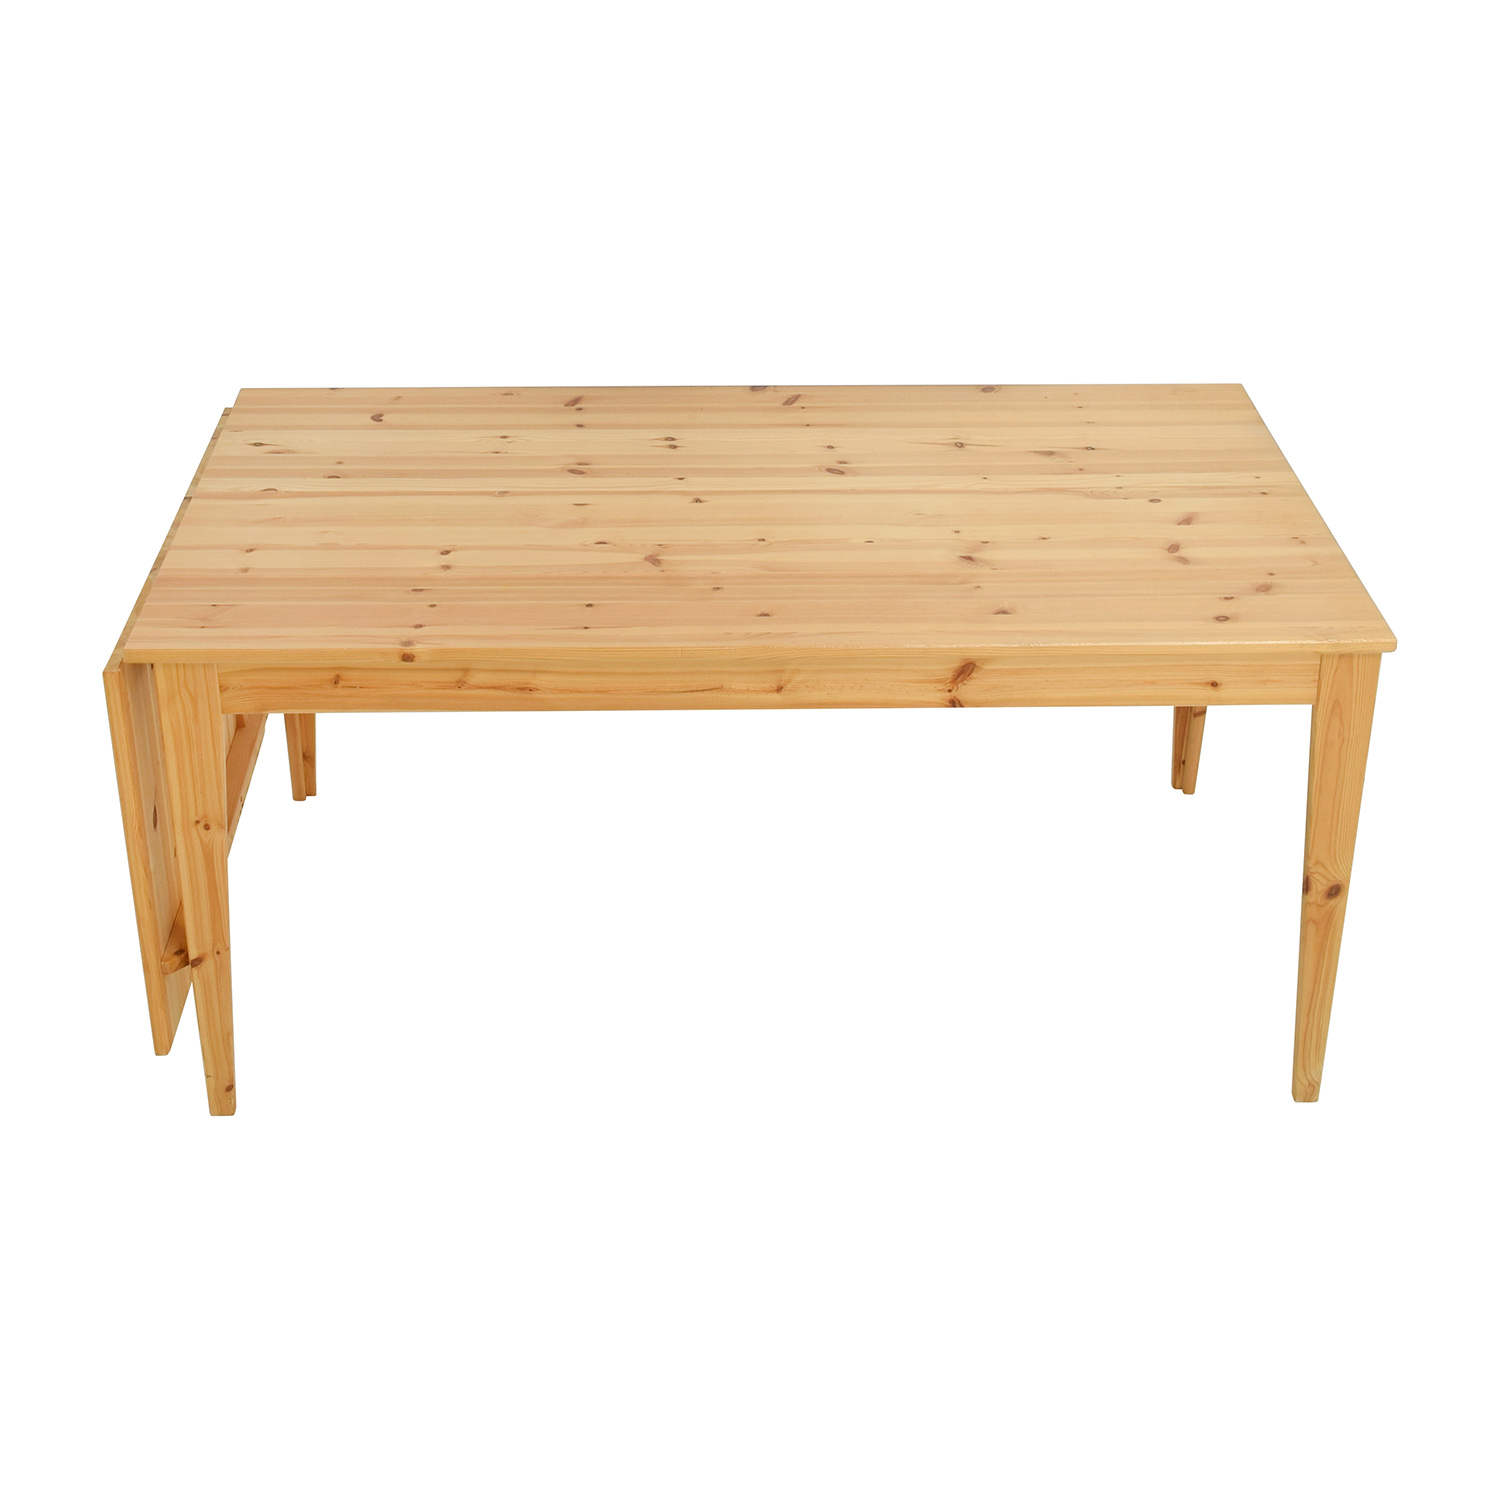 IKEA Normas Pine Wood Drop Leaf Table IKEA